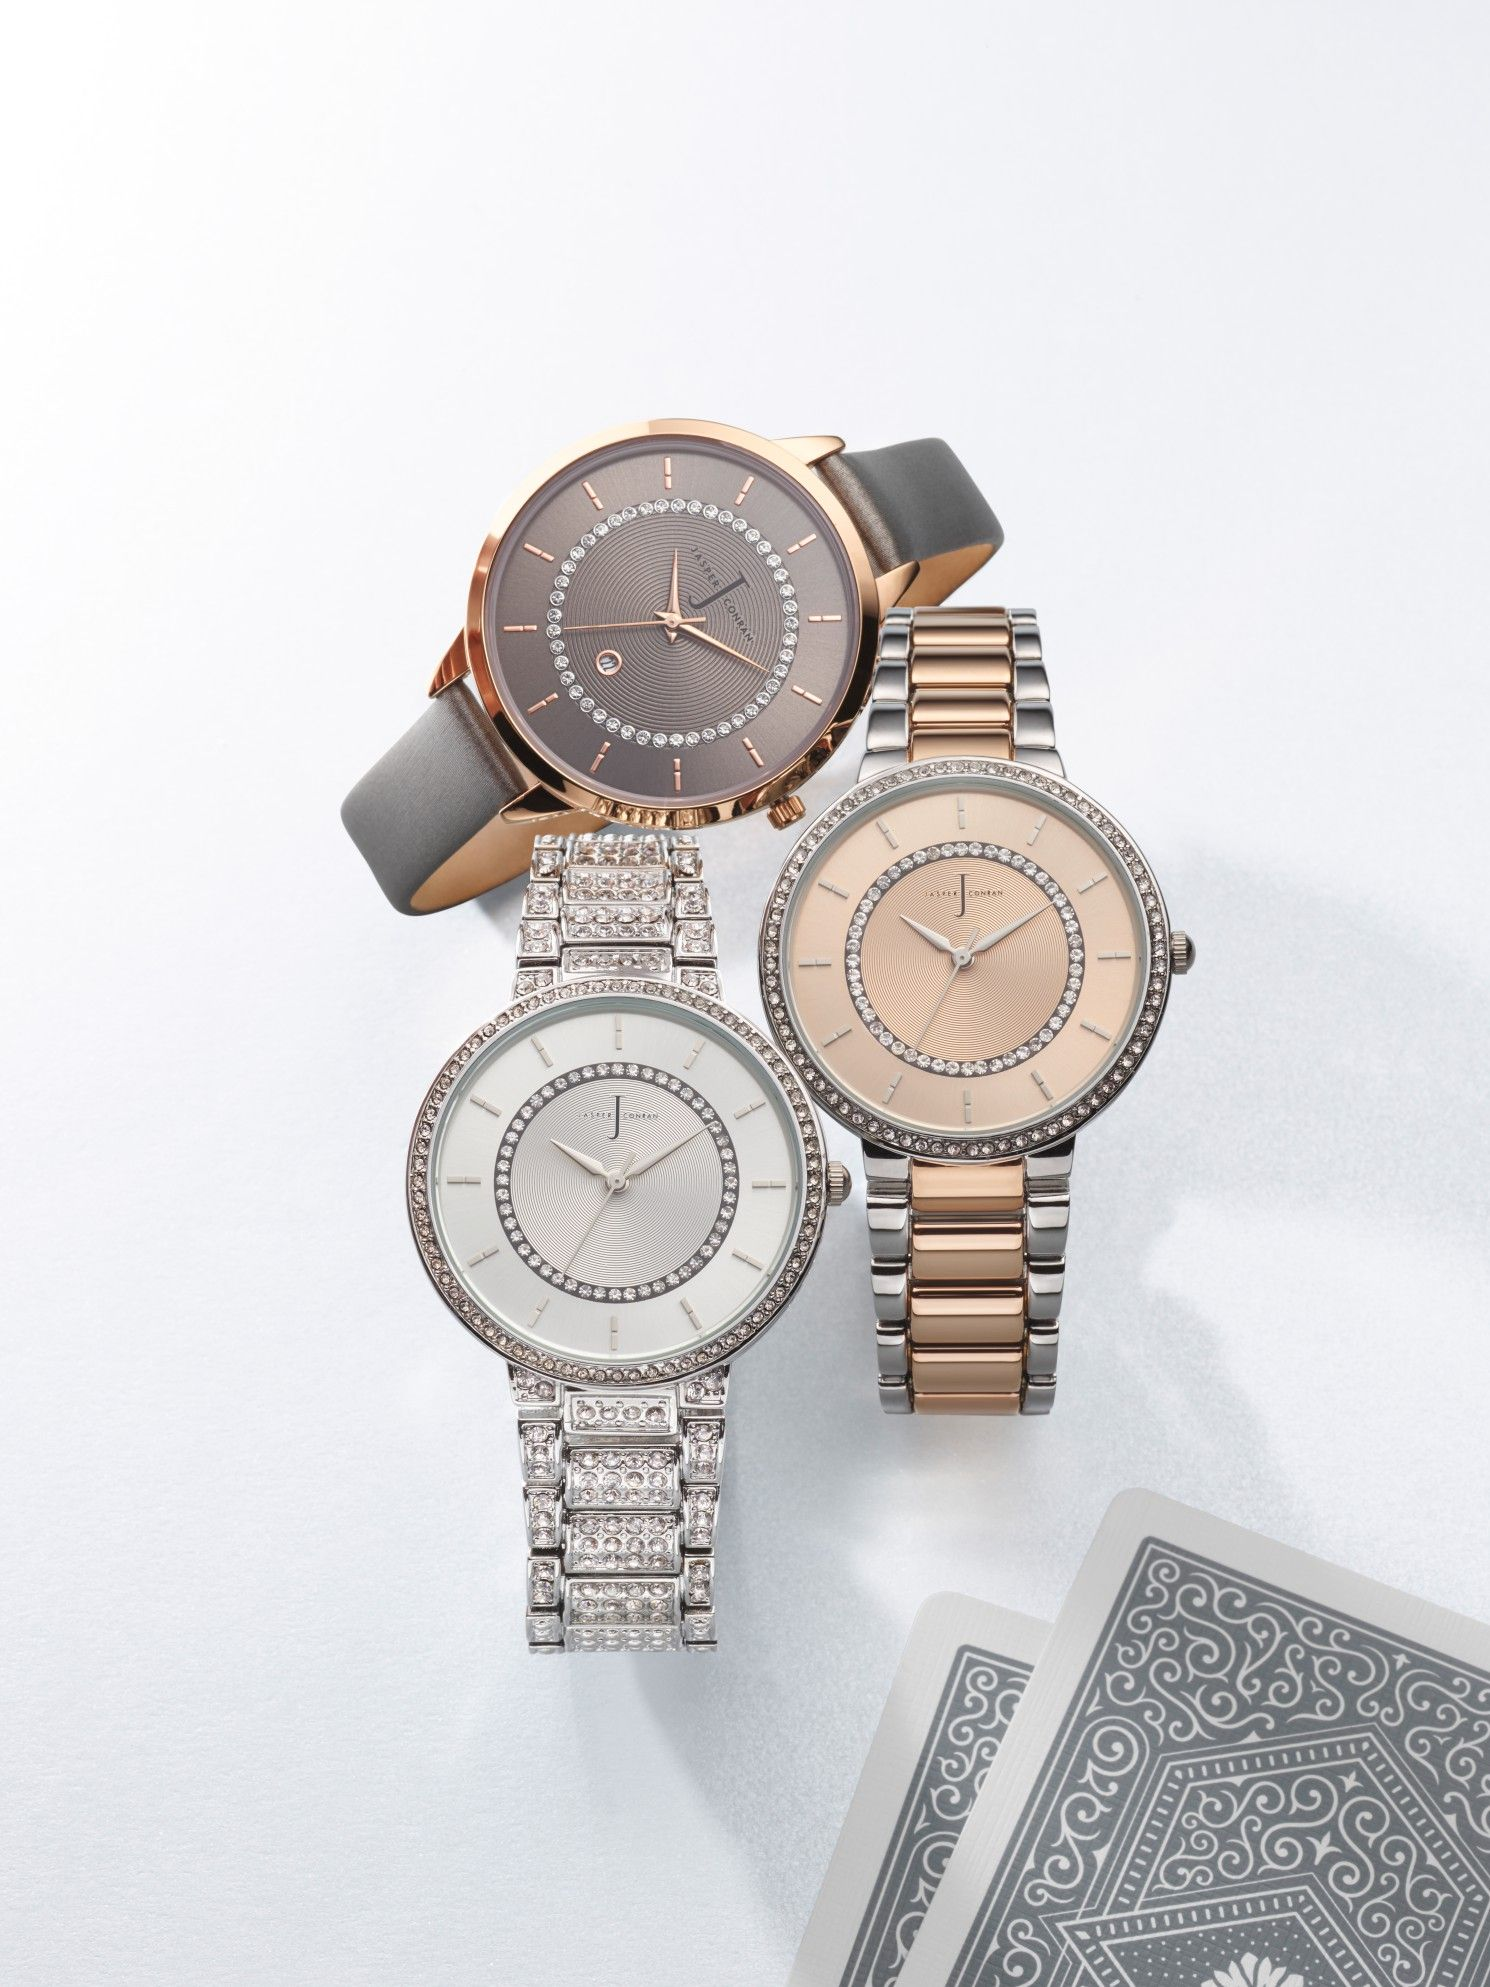 Tell The Time This Christmas With Your New Watch